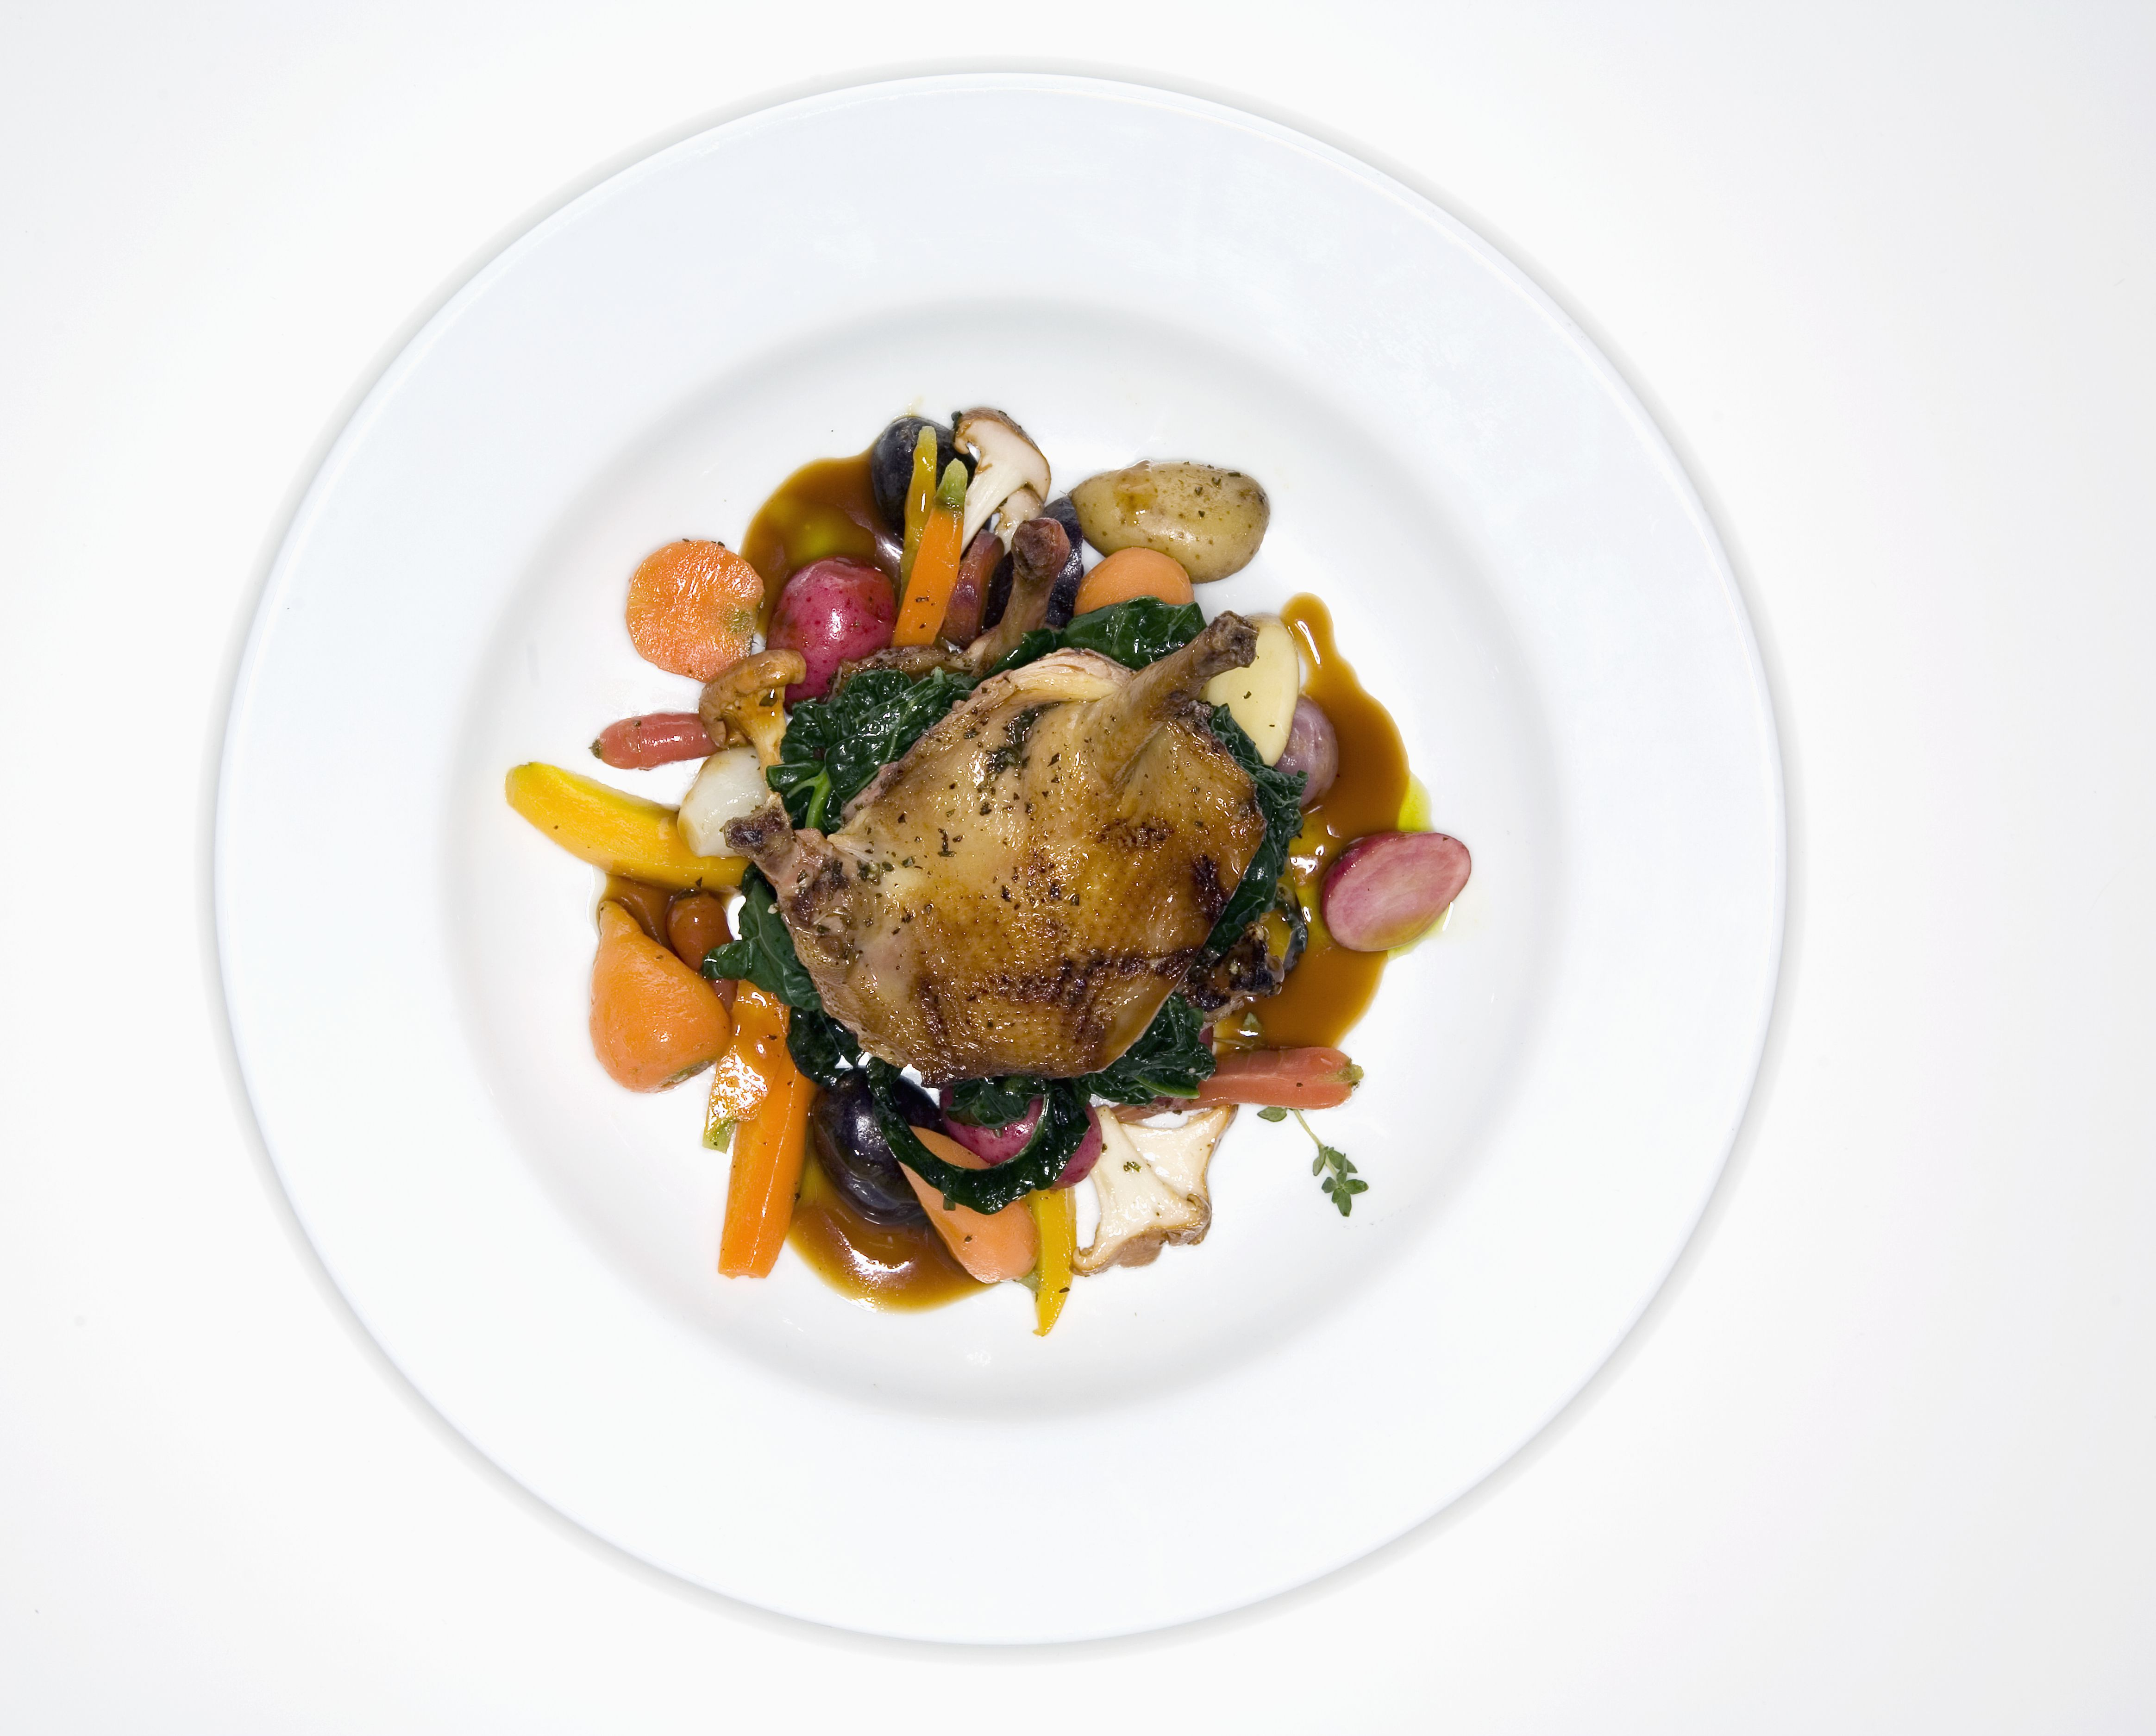 Cornish hen with vegetables on plate